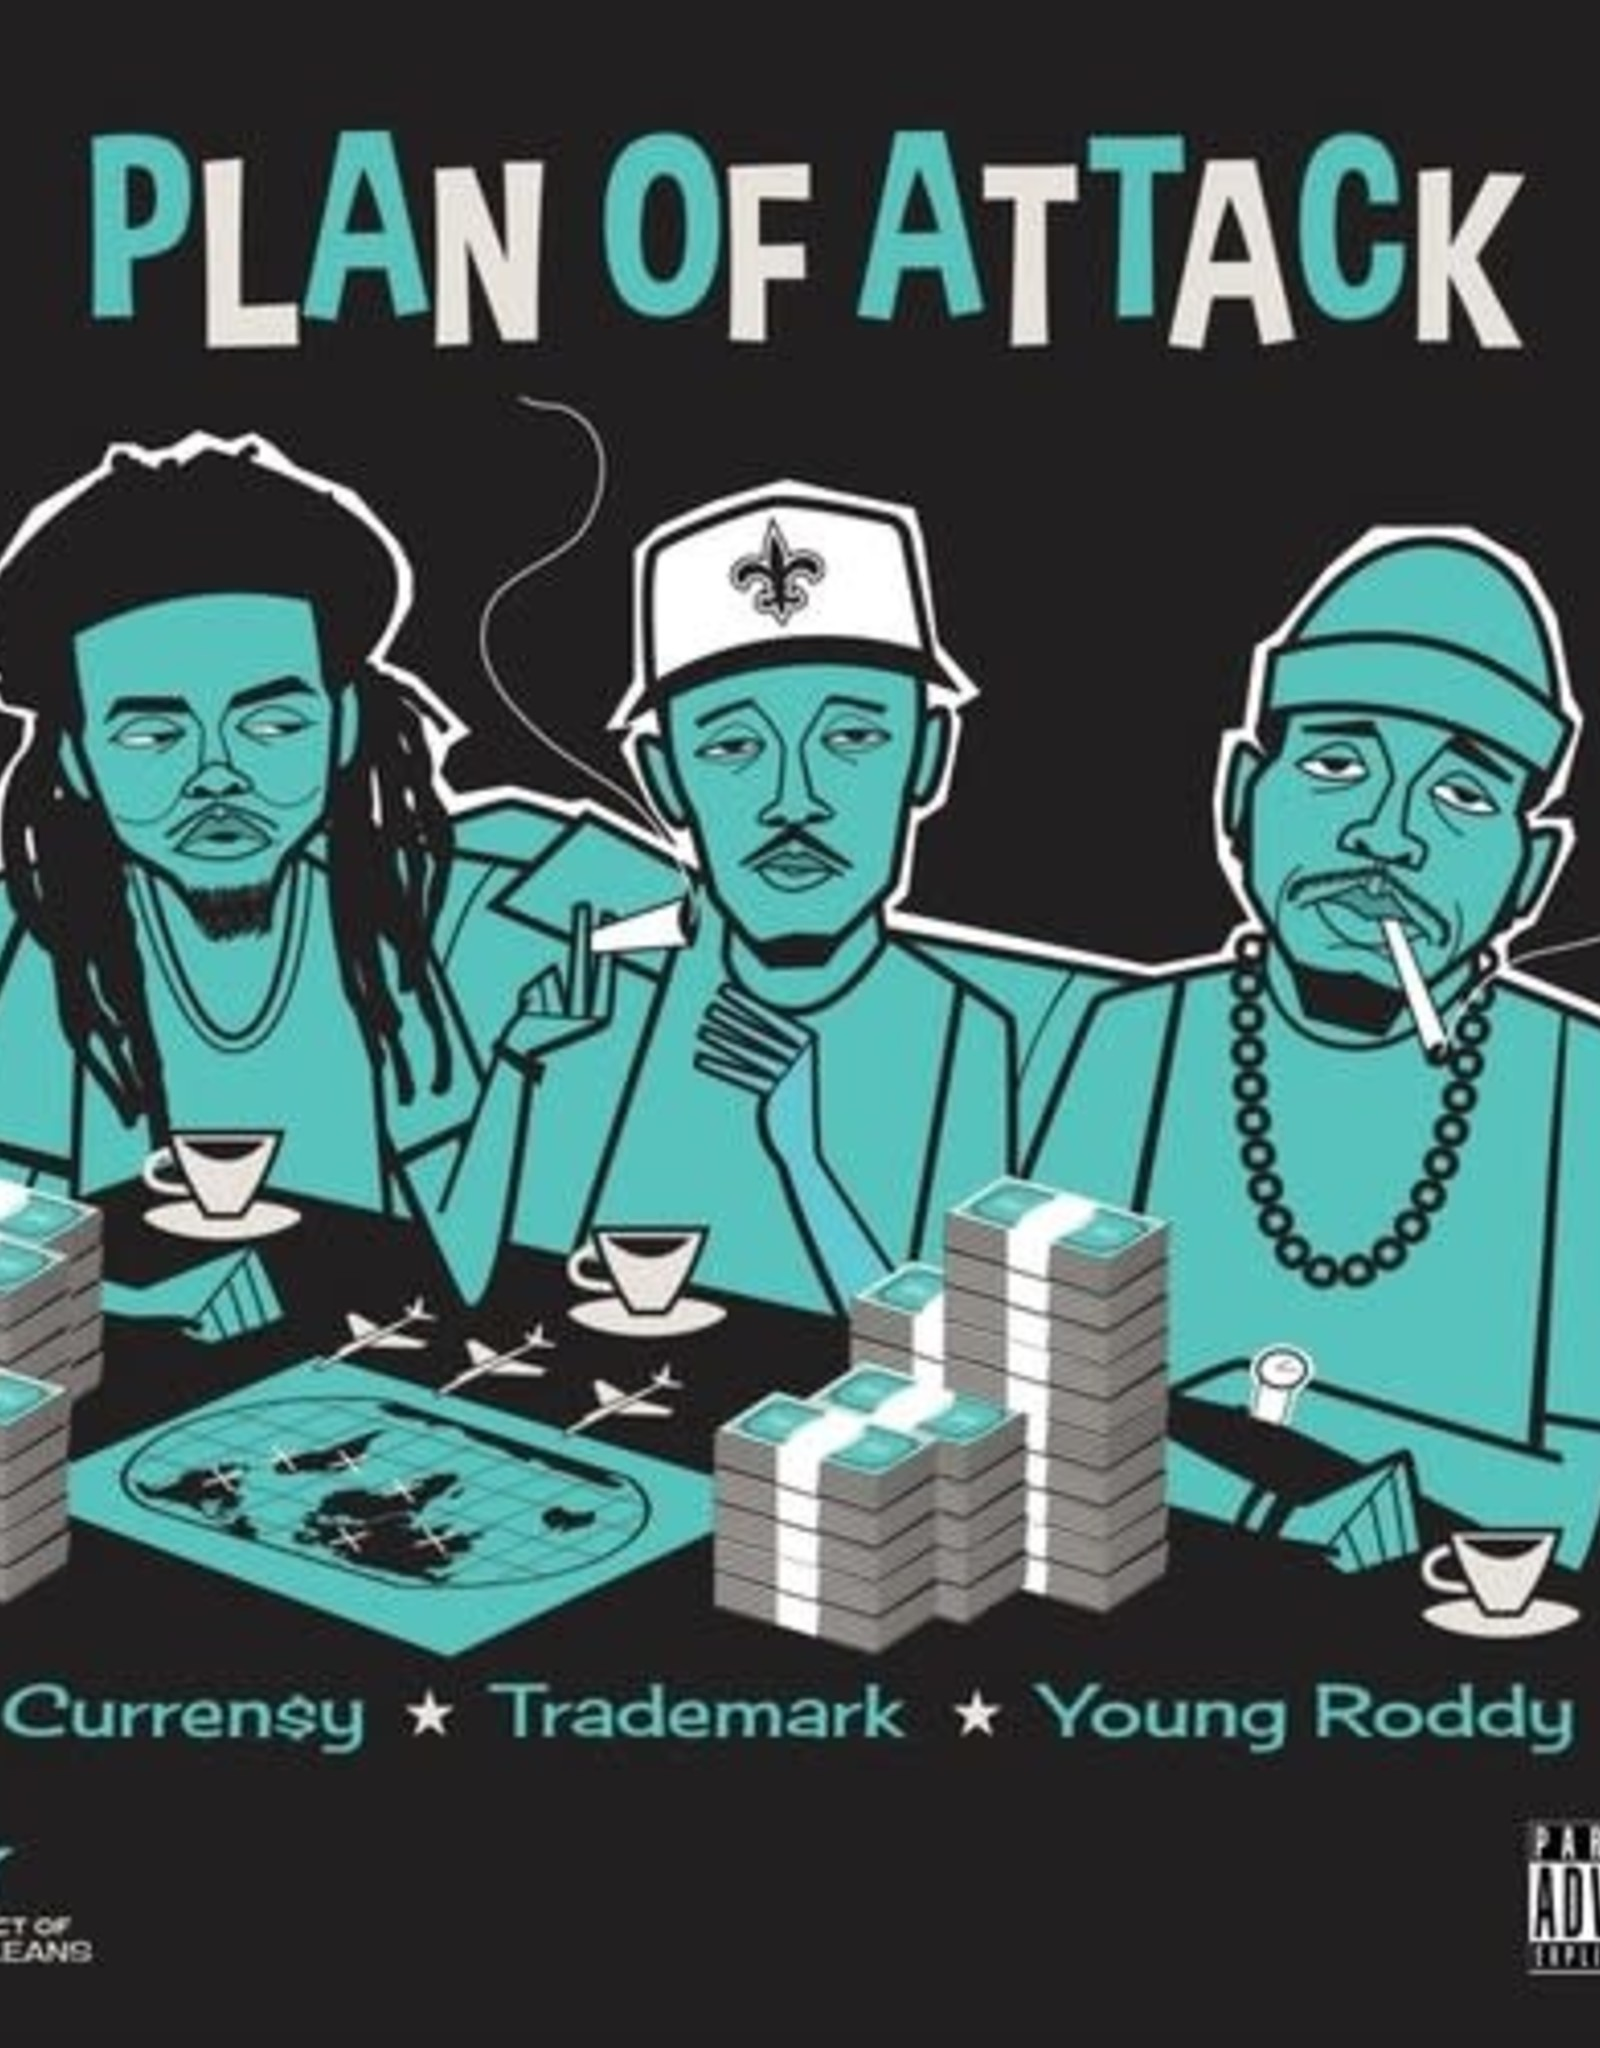 Curren$y, Trademark, Young Roddy - Plan of Attack